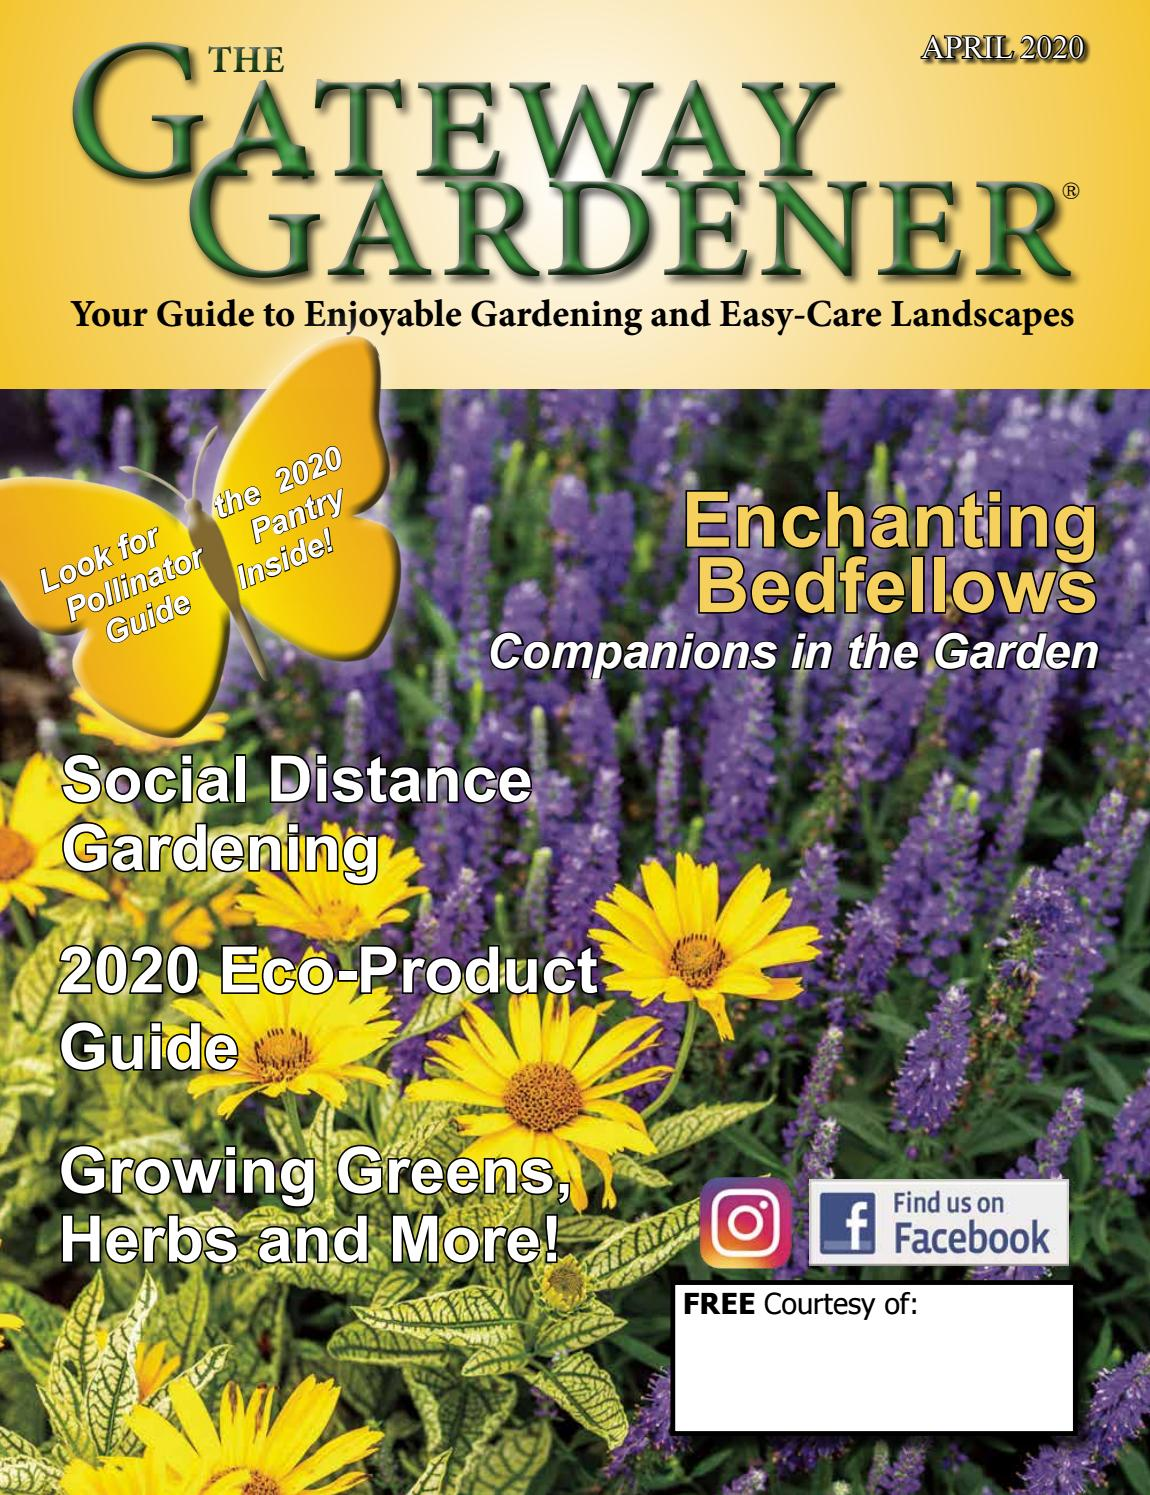 The Gateway Gardener April 2020 By